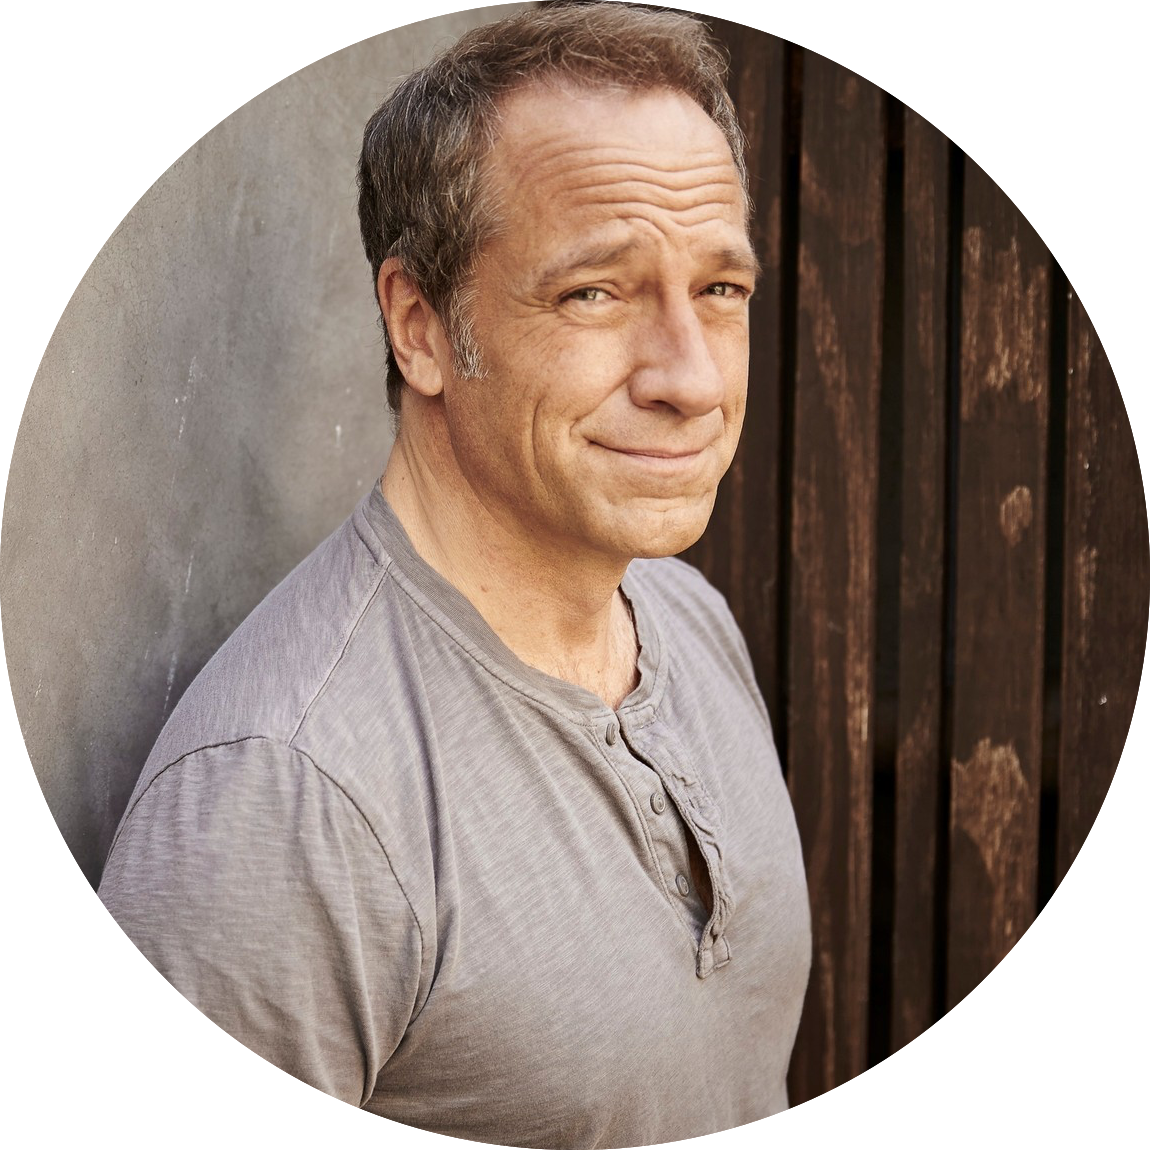 Mike RoweNARRATOR - Mike Rowe is a bridge between rural and urban. His natural charisma, humor,goodwill, and wisdom, make Mike the perfect individual to voice Farmers For America, a film created to celebrate and inspire the next generation of American farmers.Mike is a once-in-a-generation talent, Mike provided the voice and the quality of character to make Dirty Jobs a nationwide phenomenon. The show ultimately celebrated people who do the forgotten taken-for-granted blue-collar jobs that keep society functioning. He's currently the host of Facebook's show Returning the Favor, and the hit podcast The Way I Heard It. Mike is also the CEO of the mikeroweWORKS Foundation, a non-profit that focuses on helping to close the skills gap through initiatives like the Work Ethic Scholarship Program which provide support to people who want to learn a skilled trade.